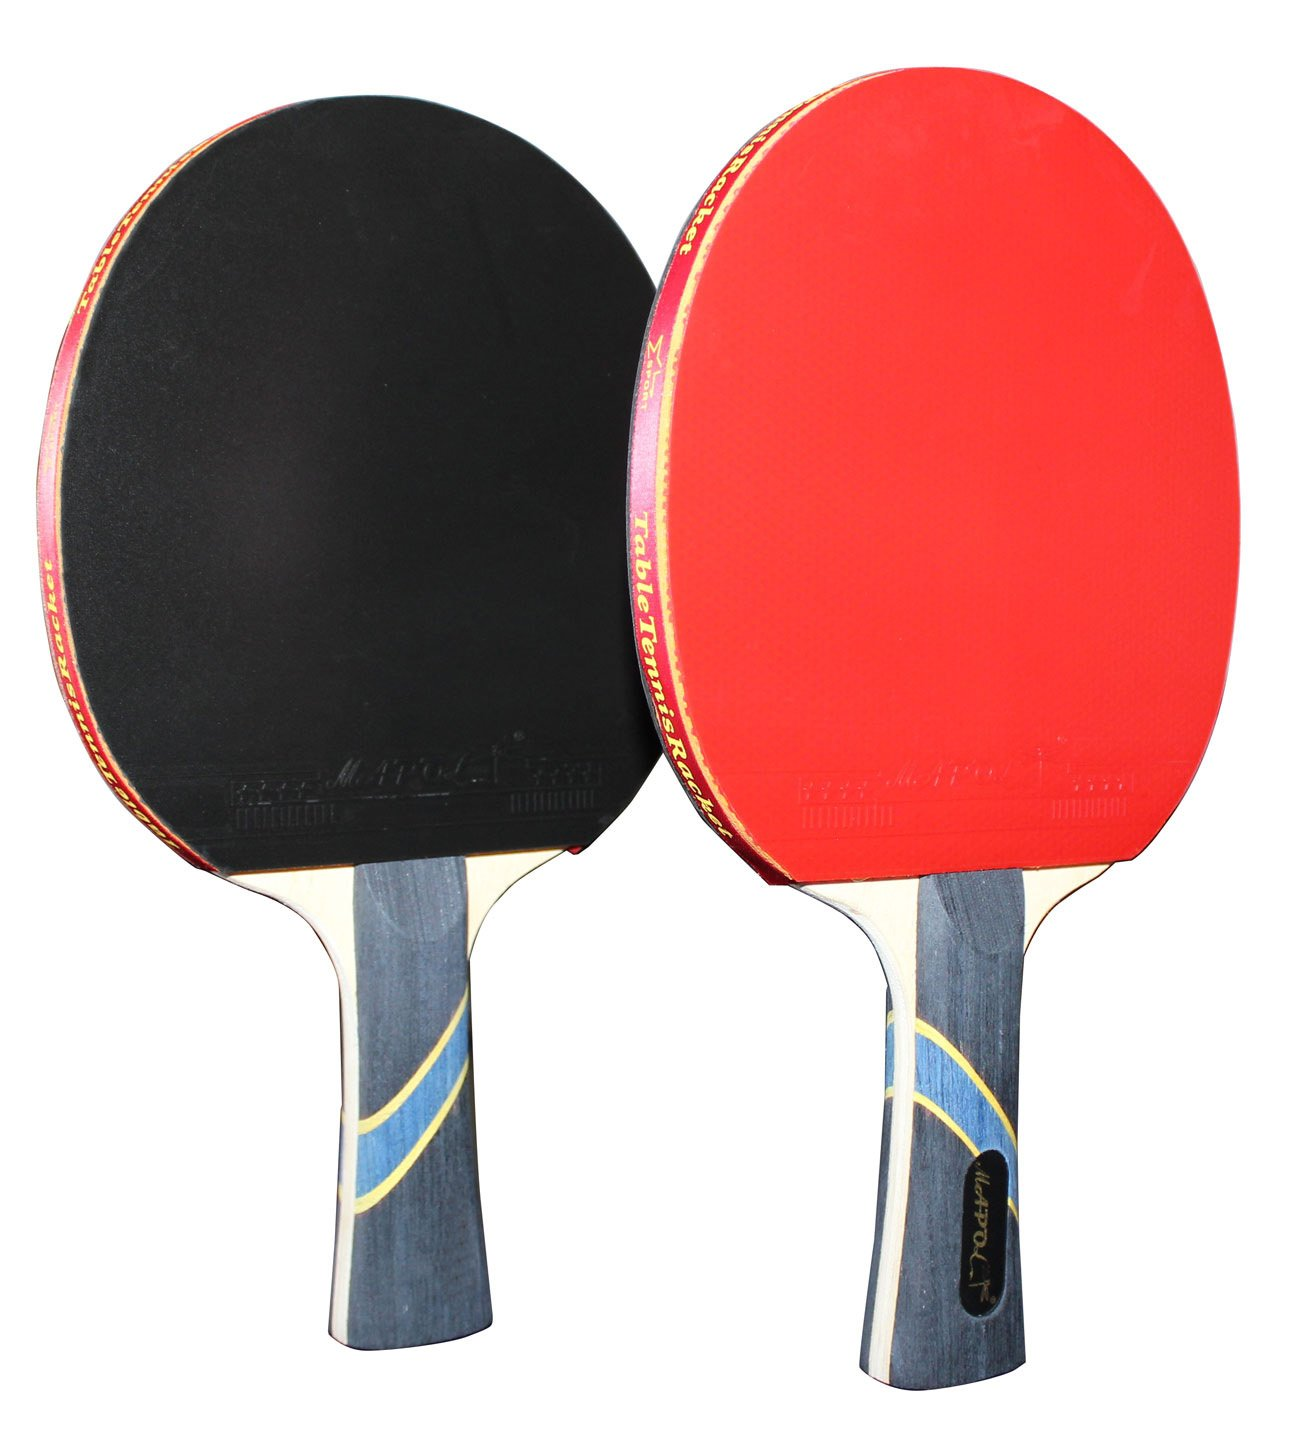 mapol 4 star table tennis paddle advanced trainning ping pong racket with car chickadee. Black Bedroom Furniture Sets. Home Design Ideas